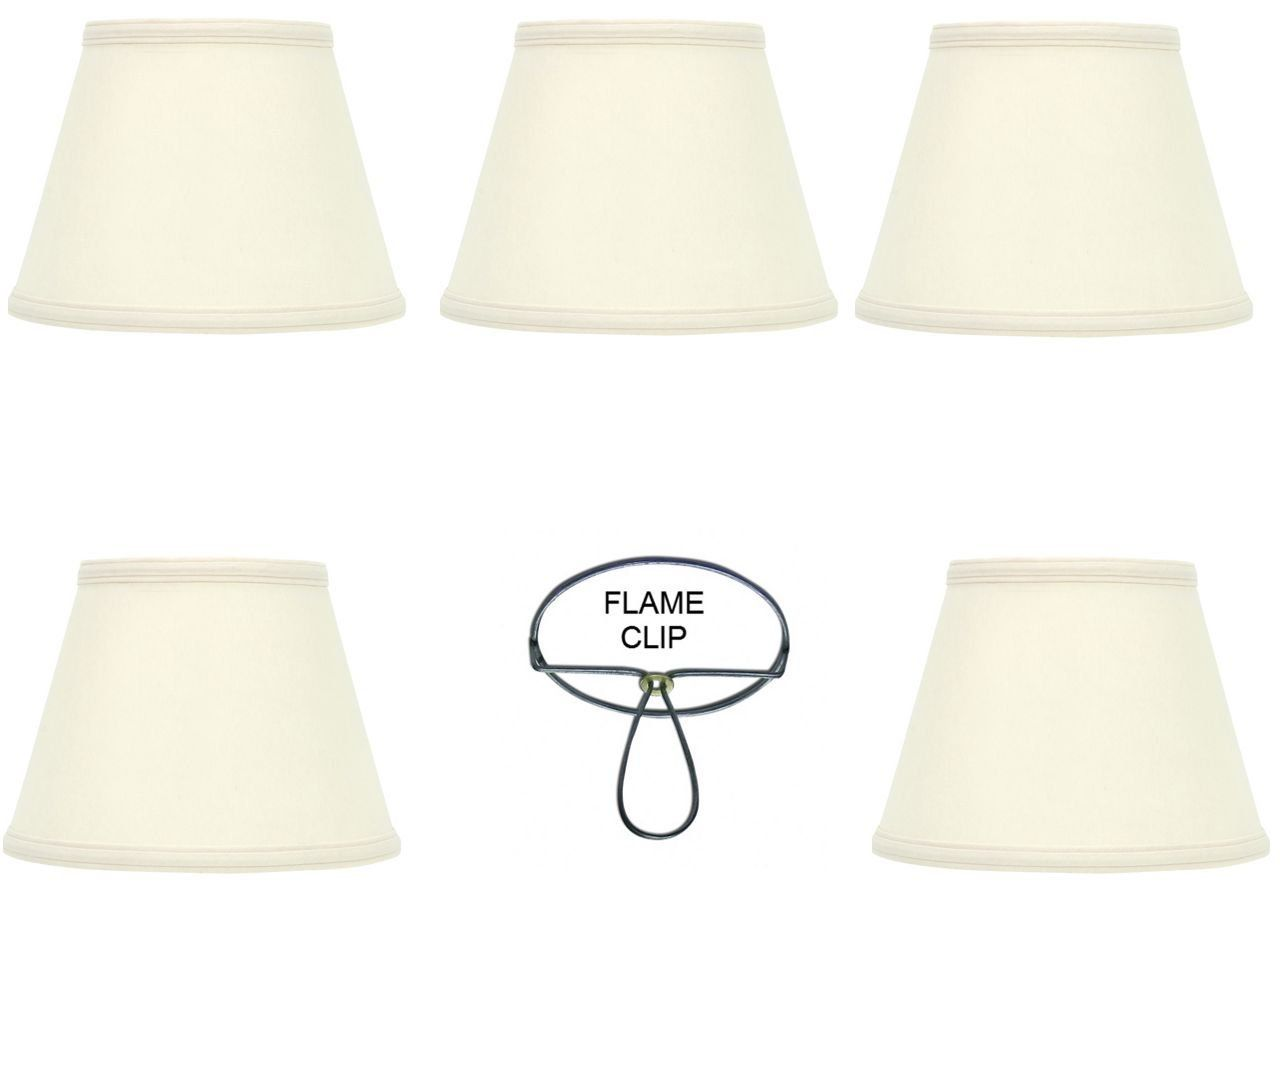 Mini Chandelier Shades Clip On Small Lamp Shades Set Of Five Eggshell Silk Type Read More Reviews Of The Product B Small Lamp Shades Lamp Shades Home Decor